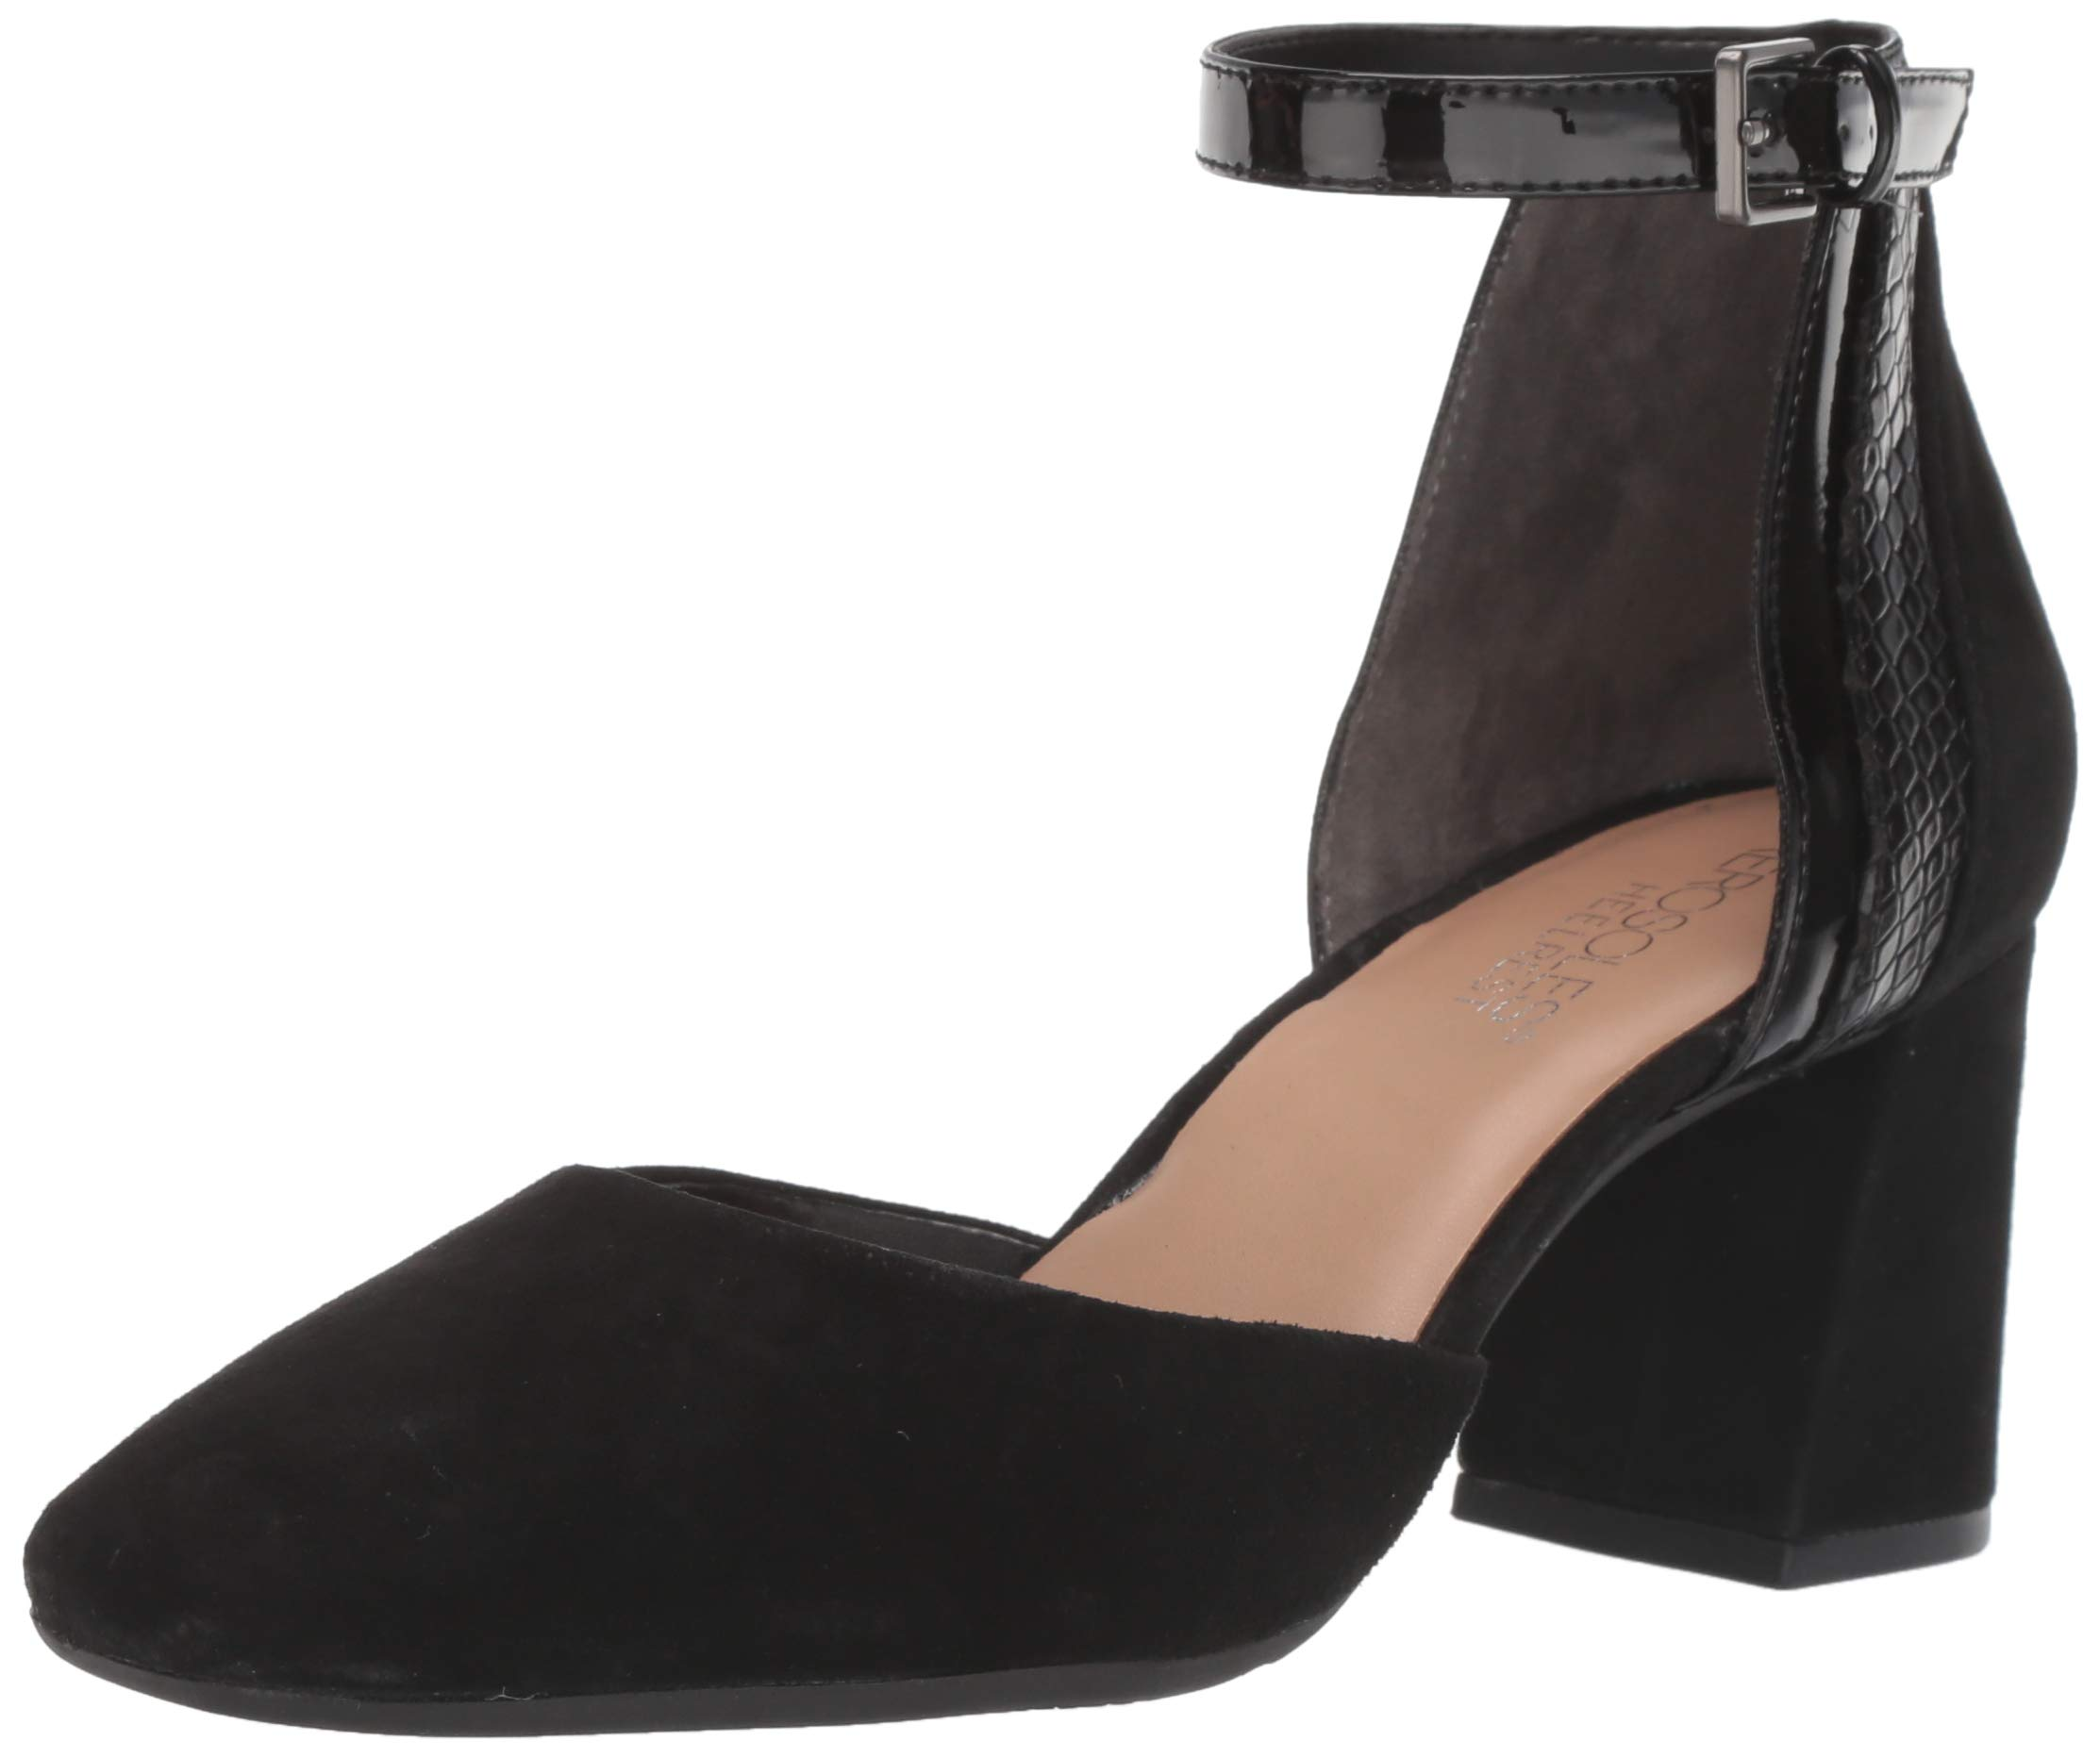 Aerosoles Women's Honor System Pump, Black Suede, 9.5 M US by Aerosoles